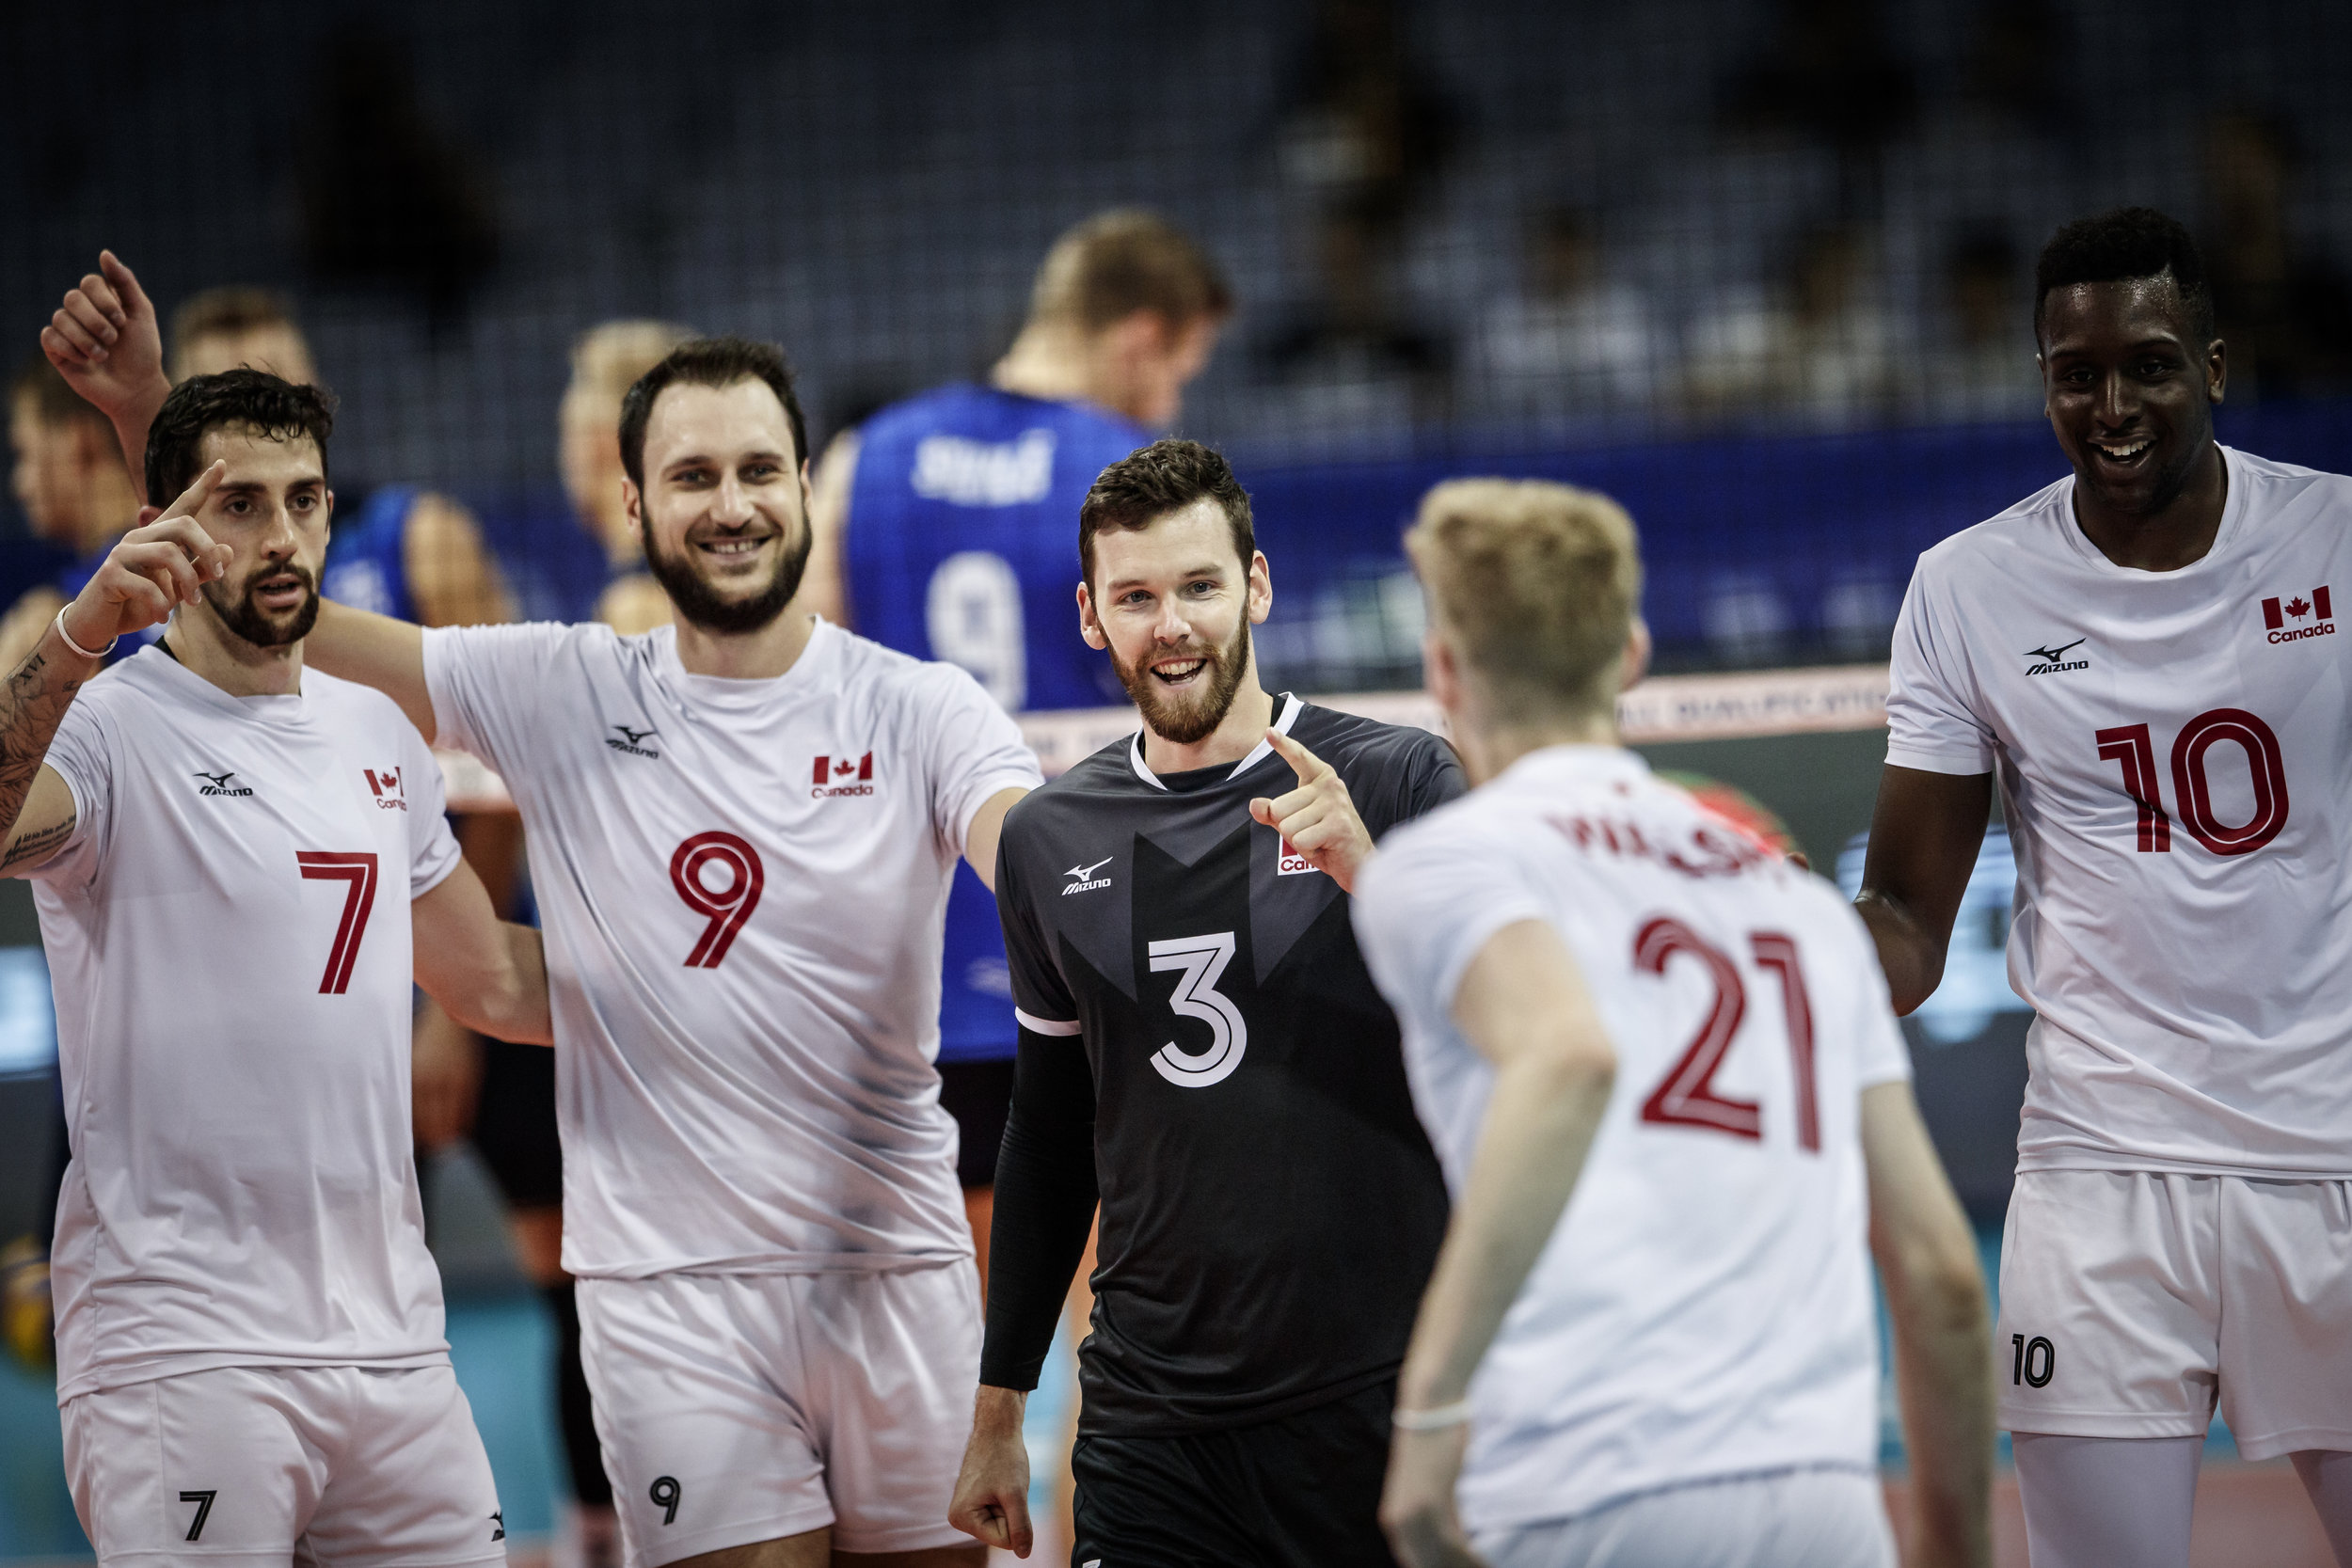 The Maple Volleys kick off their World Cup campaign on October 1st against World No. 1 Brazil and finish October 14th against hosts Japan. Photo: FIVB